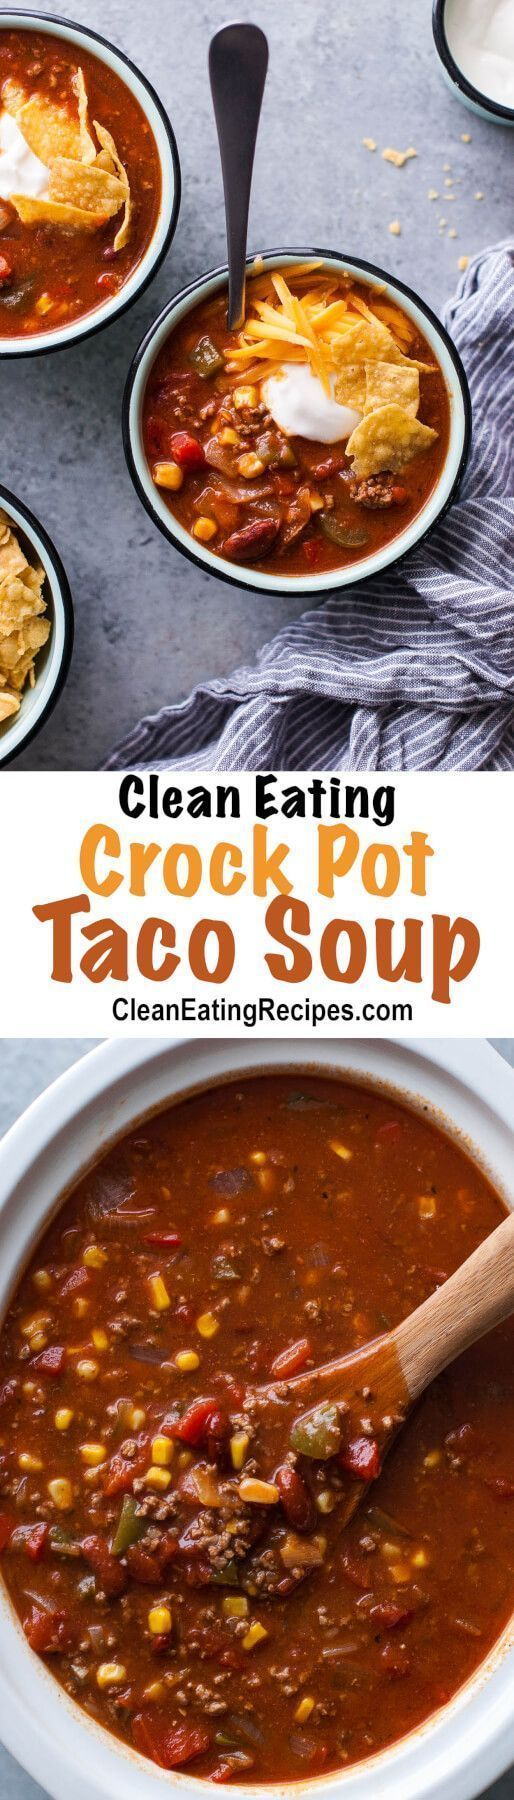 This Clean Eating taco soup recipe is full of flavor and my children love it! I love how it's really healthy and easy to make in the crock pot and the leftovers are even better than the first day.